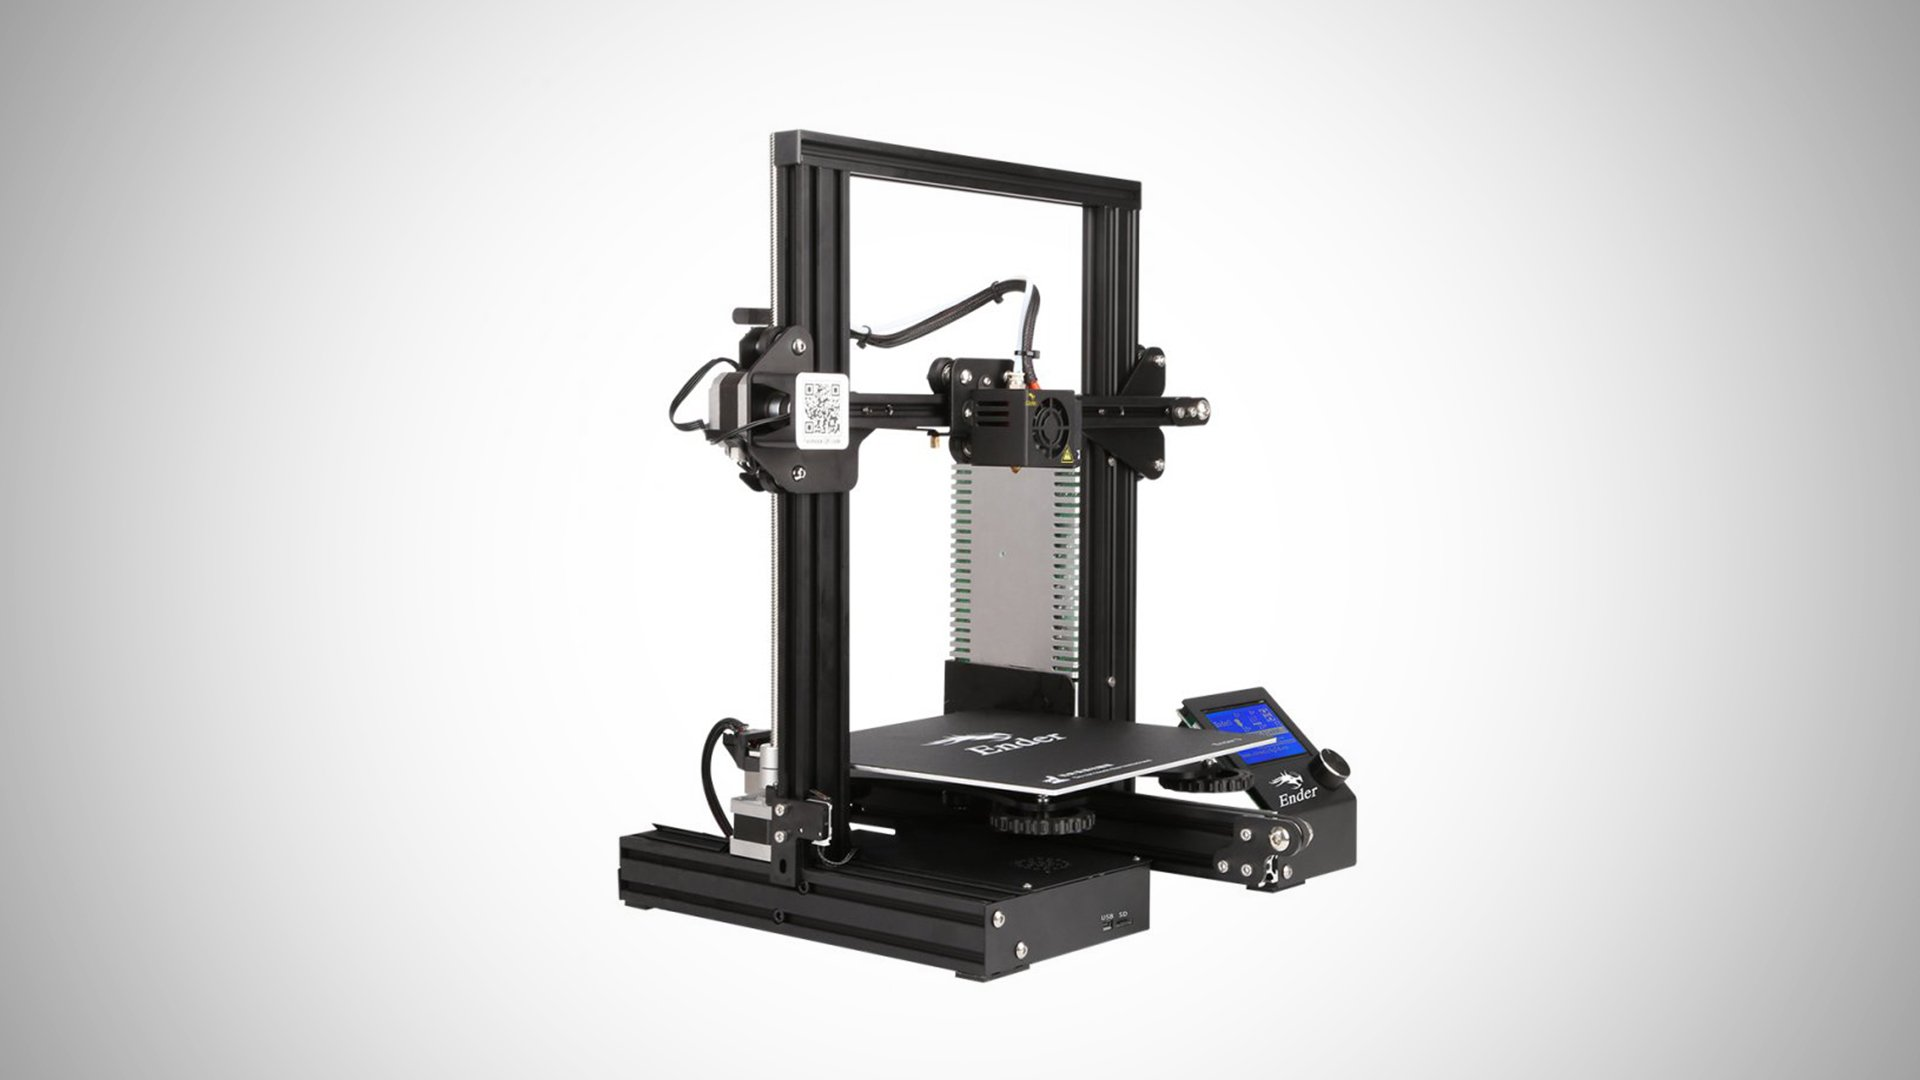 [DEAL] Get a Creality Ender 3 for $179.99 | All3DP